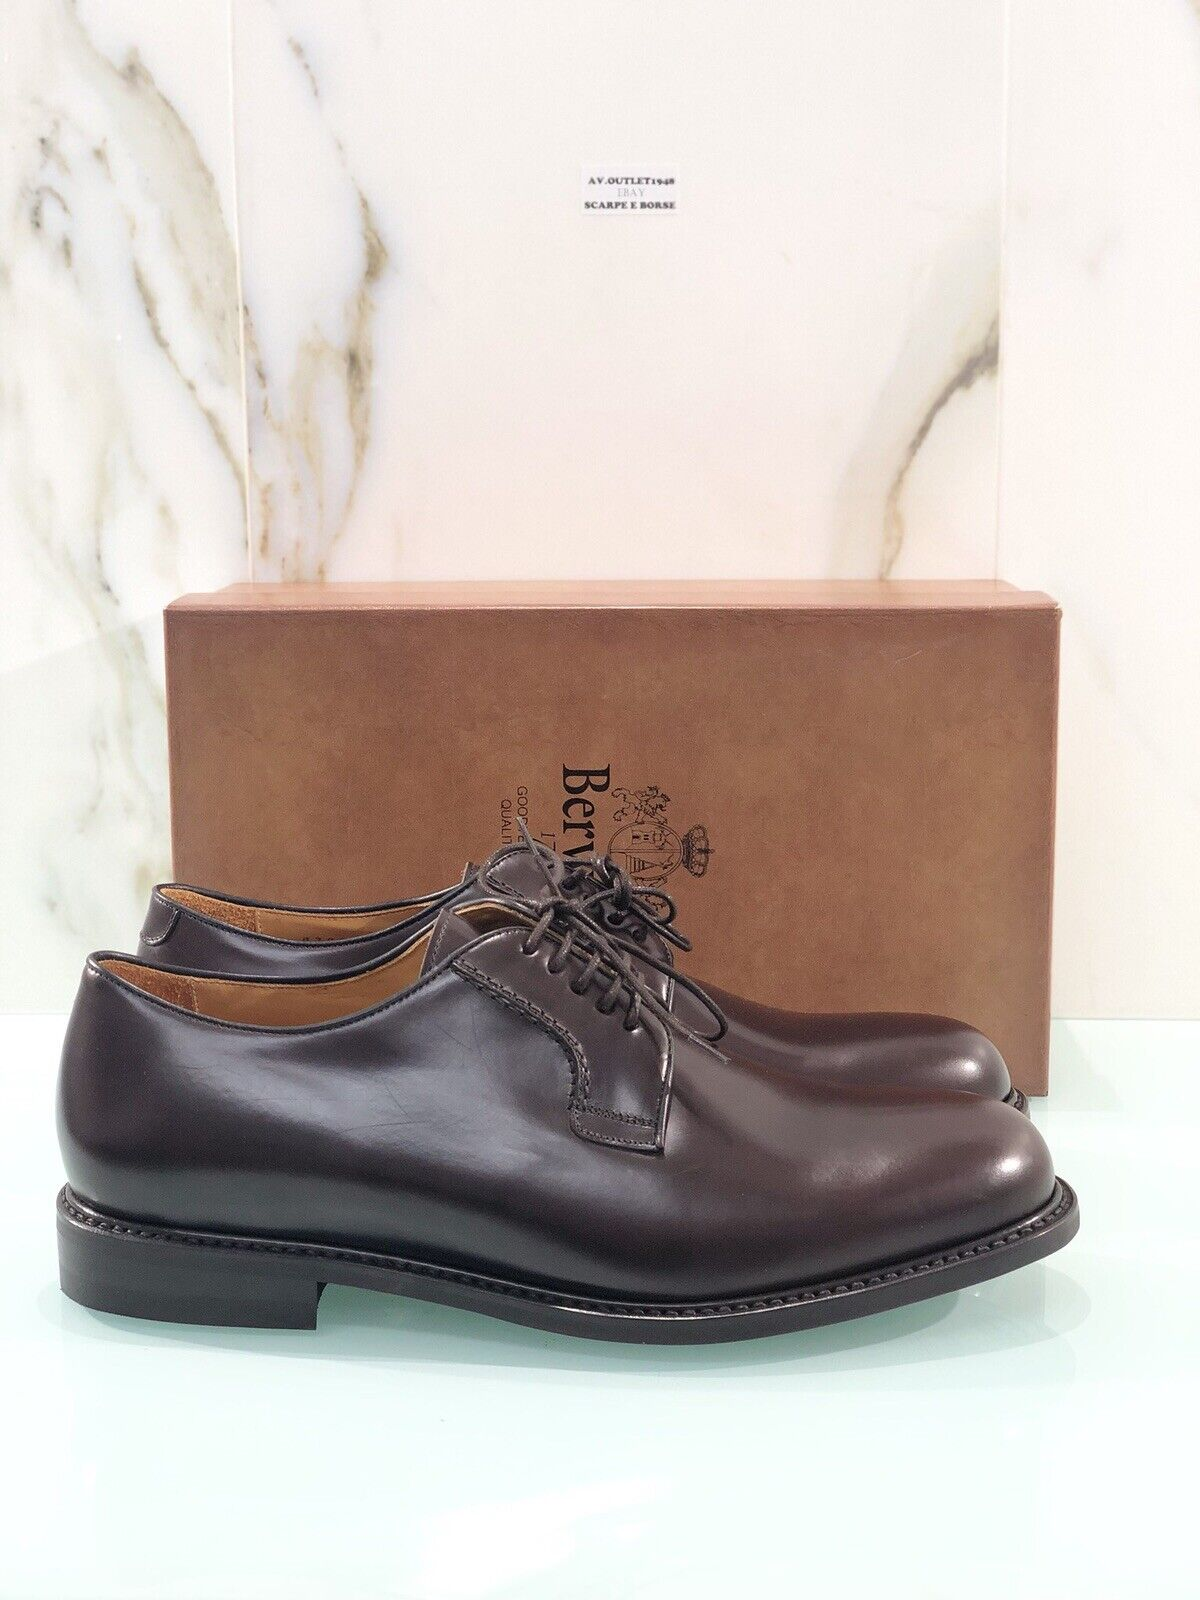 Berwick 1707 4313 In Pelle Crokex Fondo Dainite British Sole H0192 Stringata